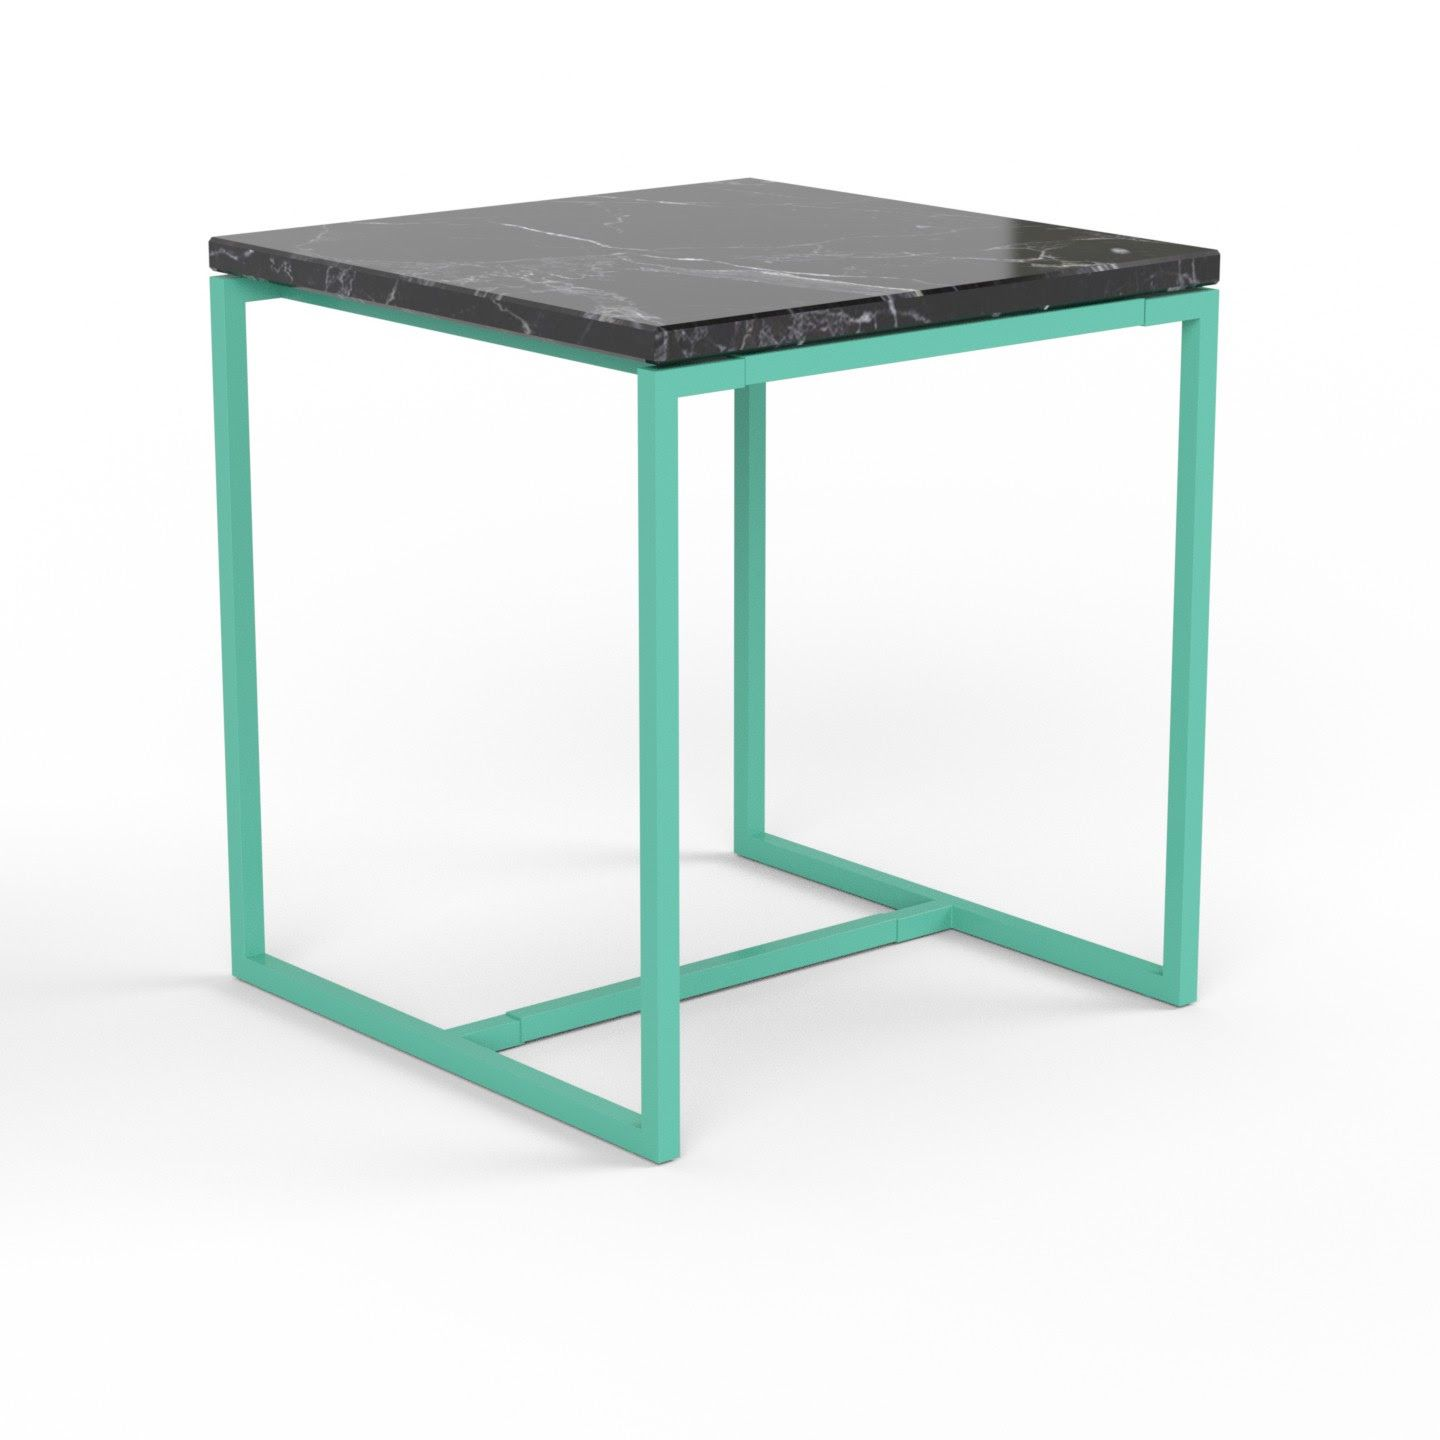 Wmg Konsolentisch Sideboard Lima Metall Schwarzbraun Syde Table With A Frame In Light Green And A Black Marble Tabletop